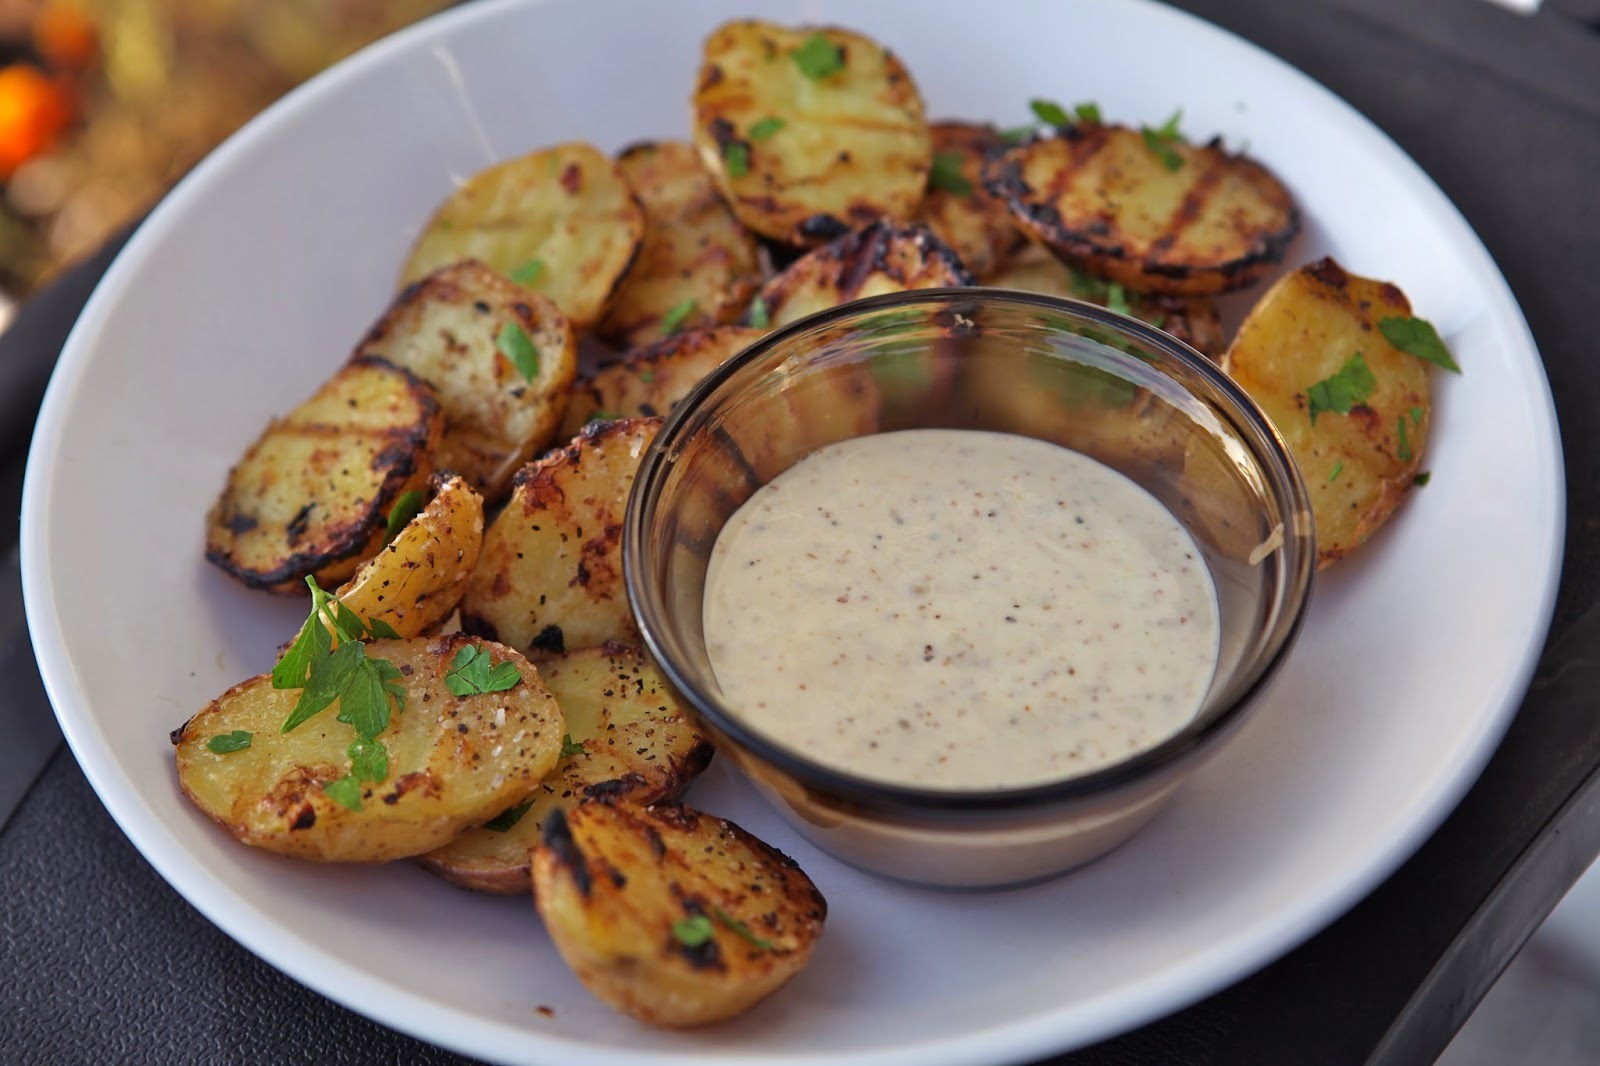 Grilled potatoes with garlic mustard aioli